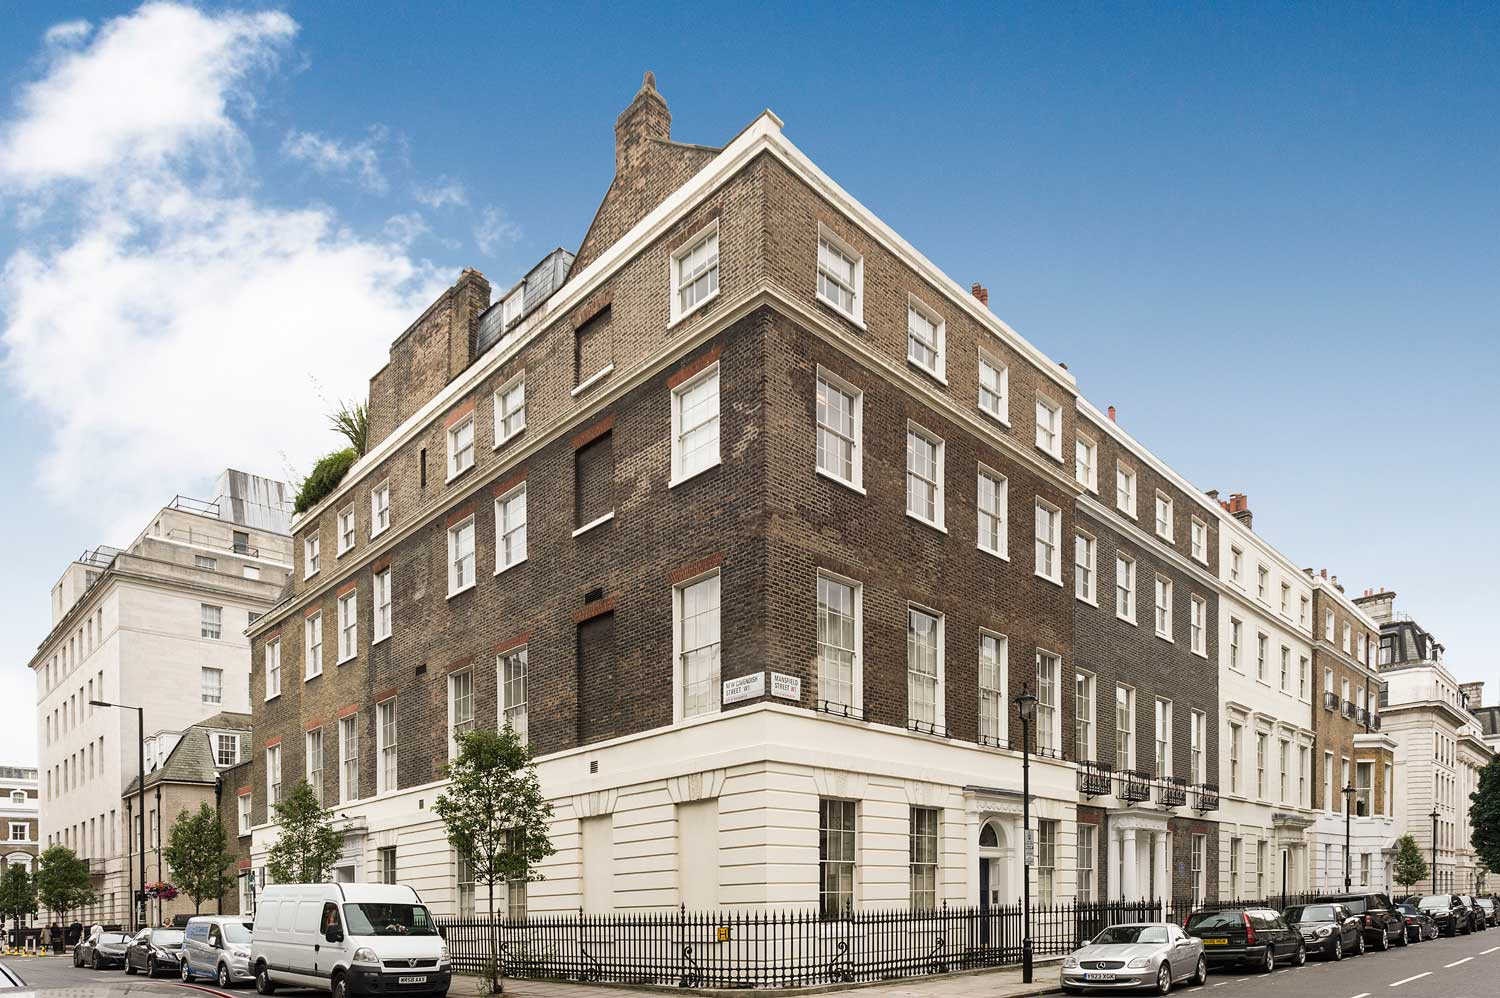 Marylebone is Rapidly Becoming London's Most Popular Urban Village 6